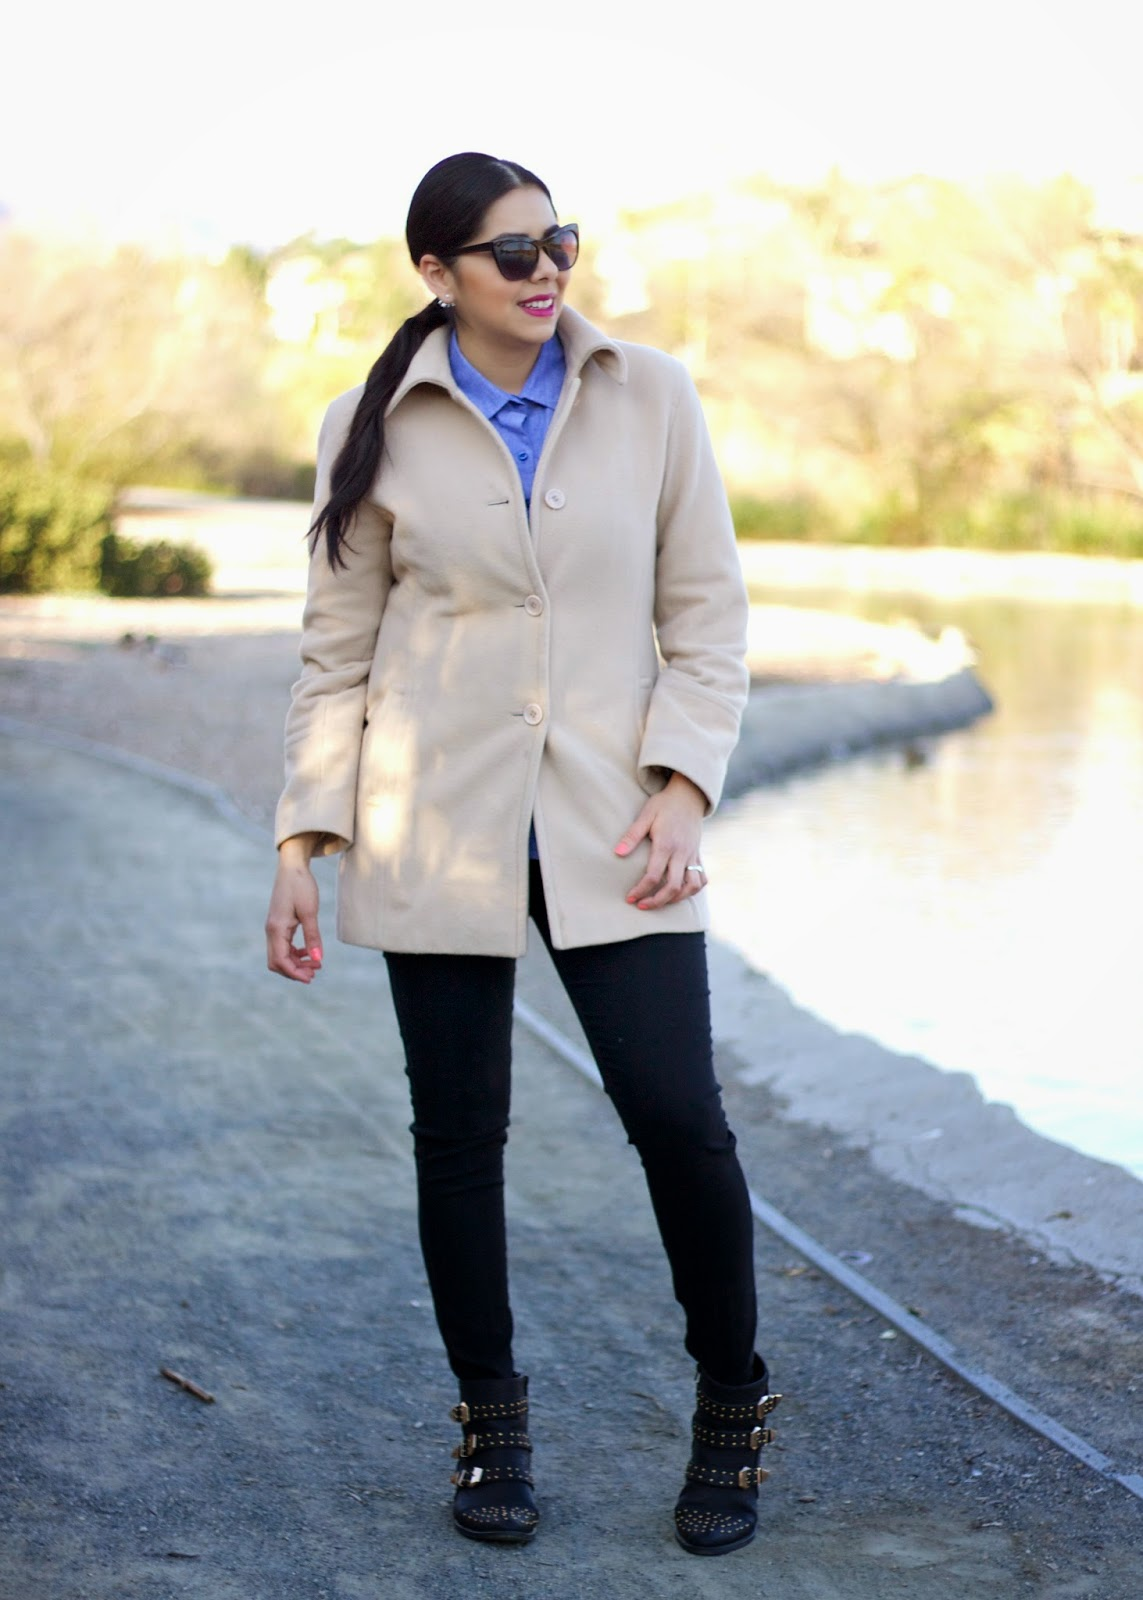 latina bloggers, chambray button up, winter outfit 2015, comfortable and sleek outfit, forever 21 blogger